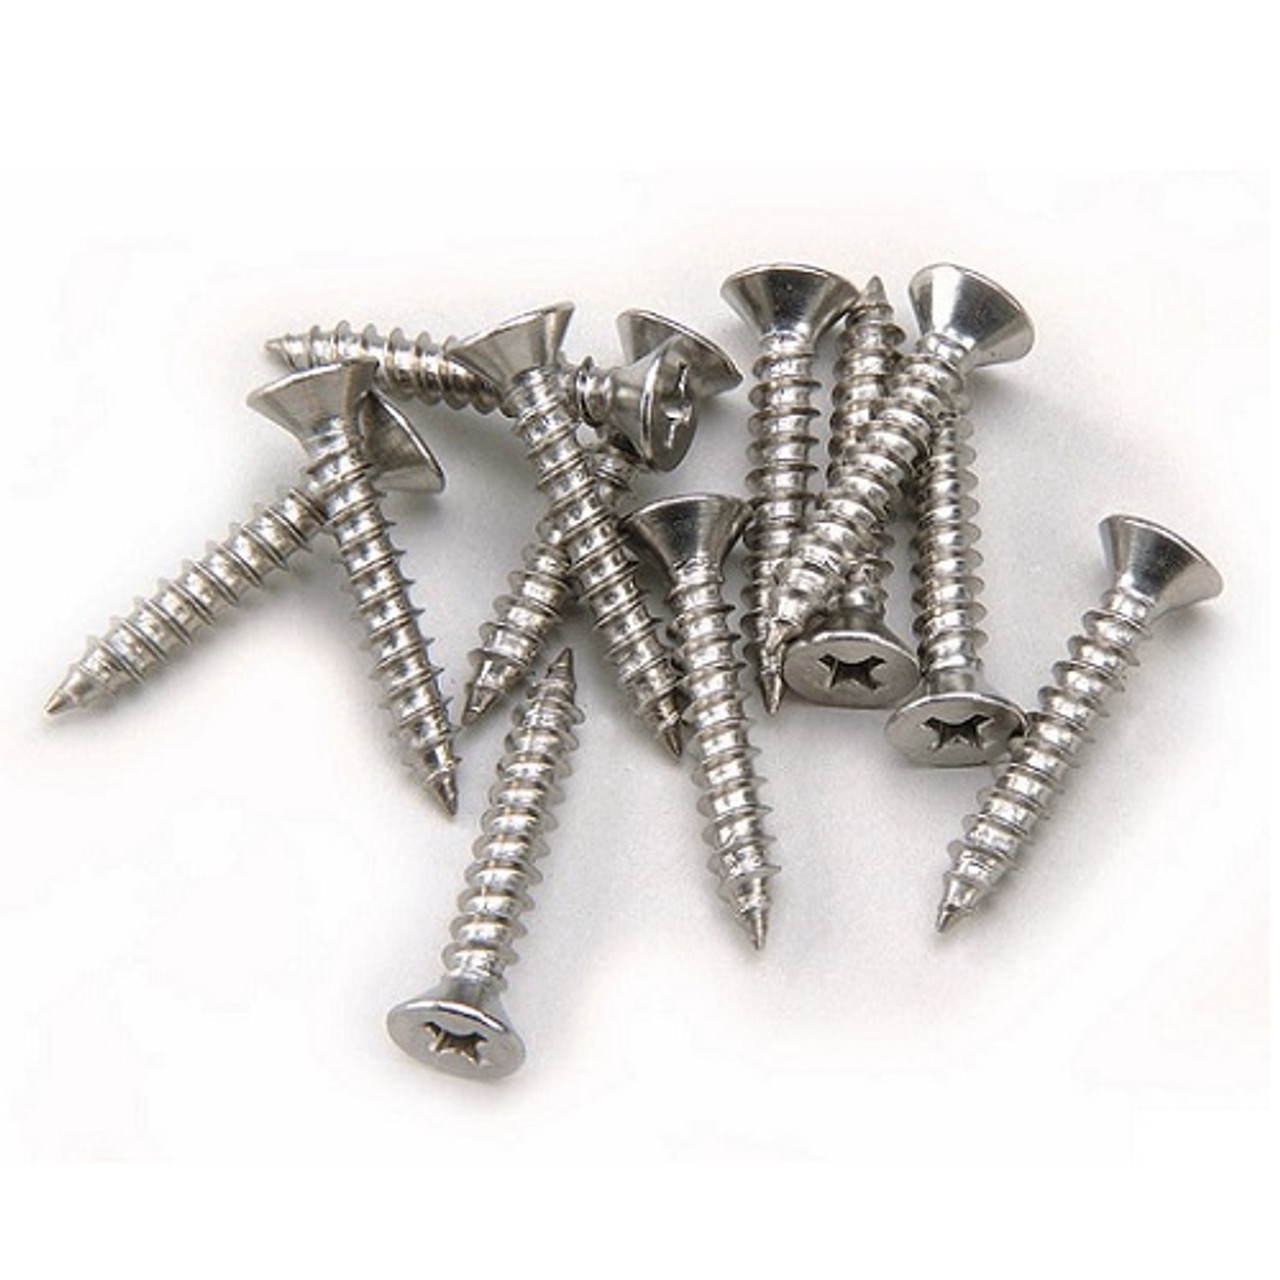 Nds Mini Channel Decorative Grate Stainless Steel Screws The